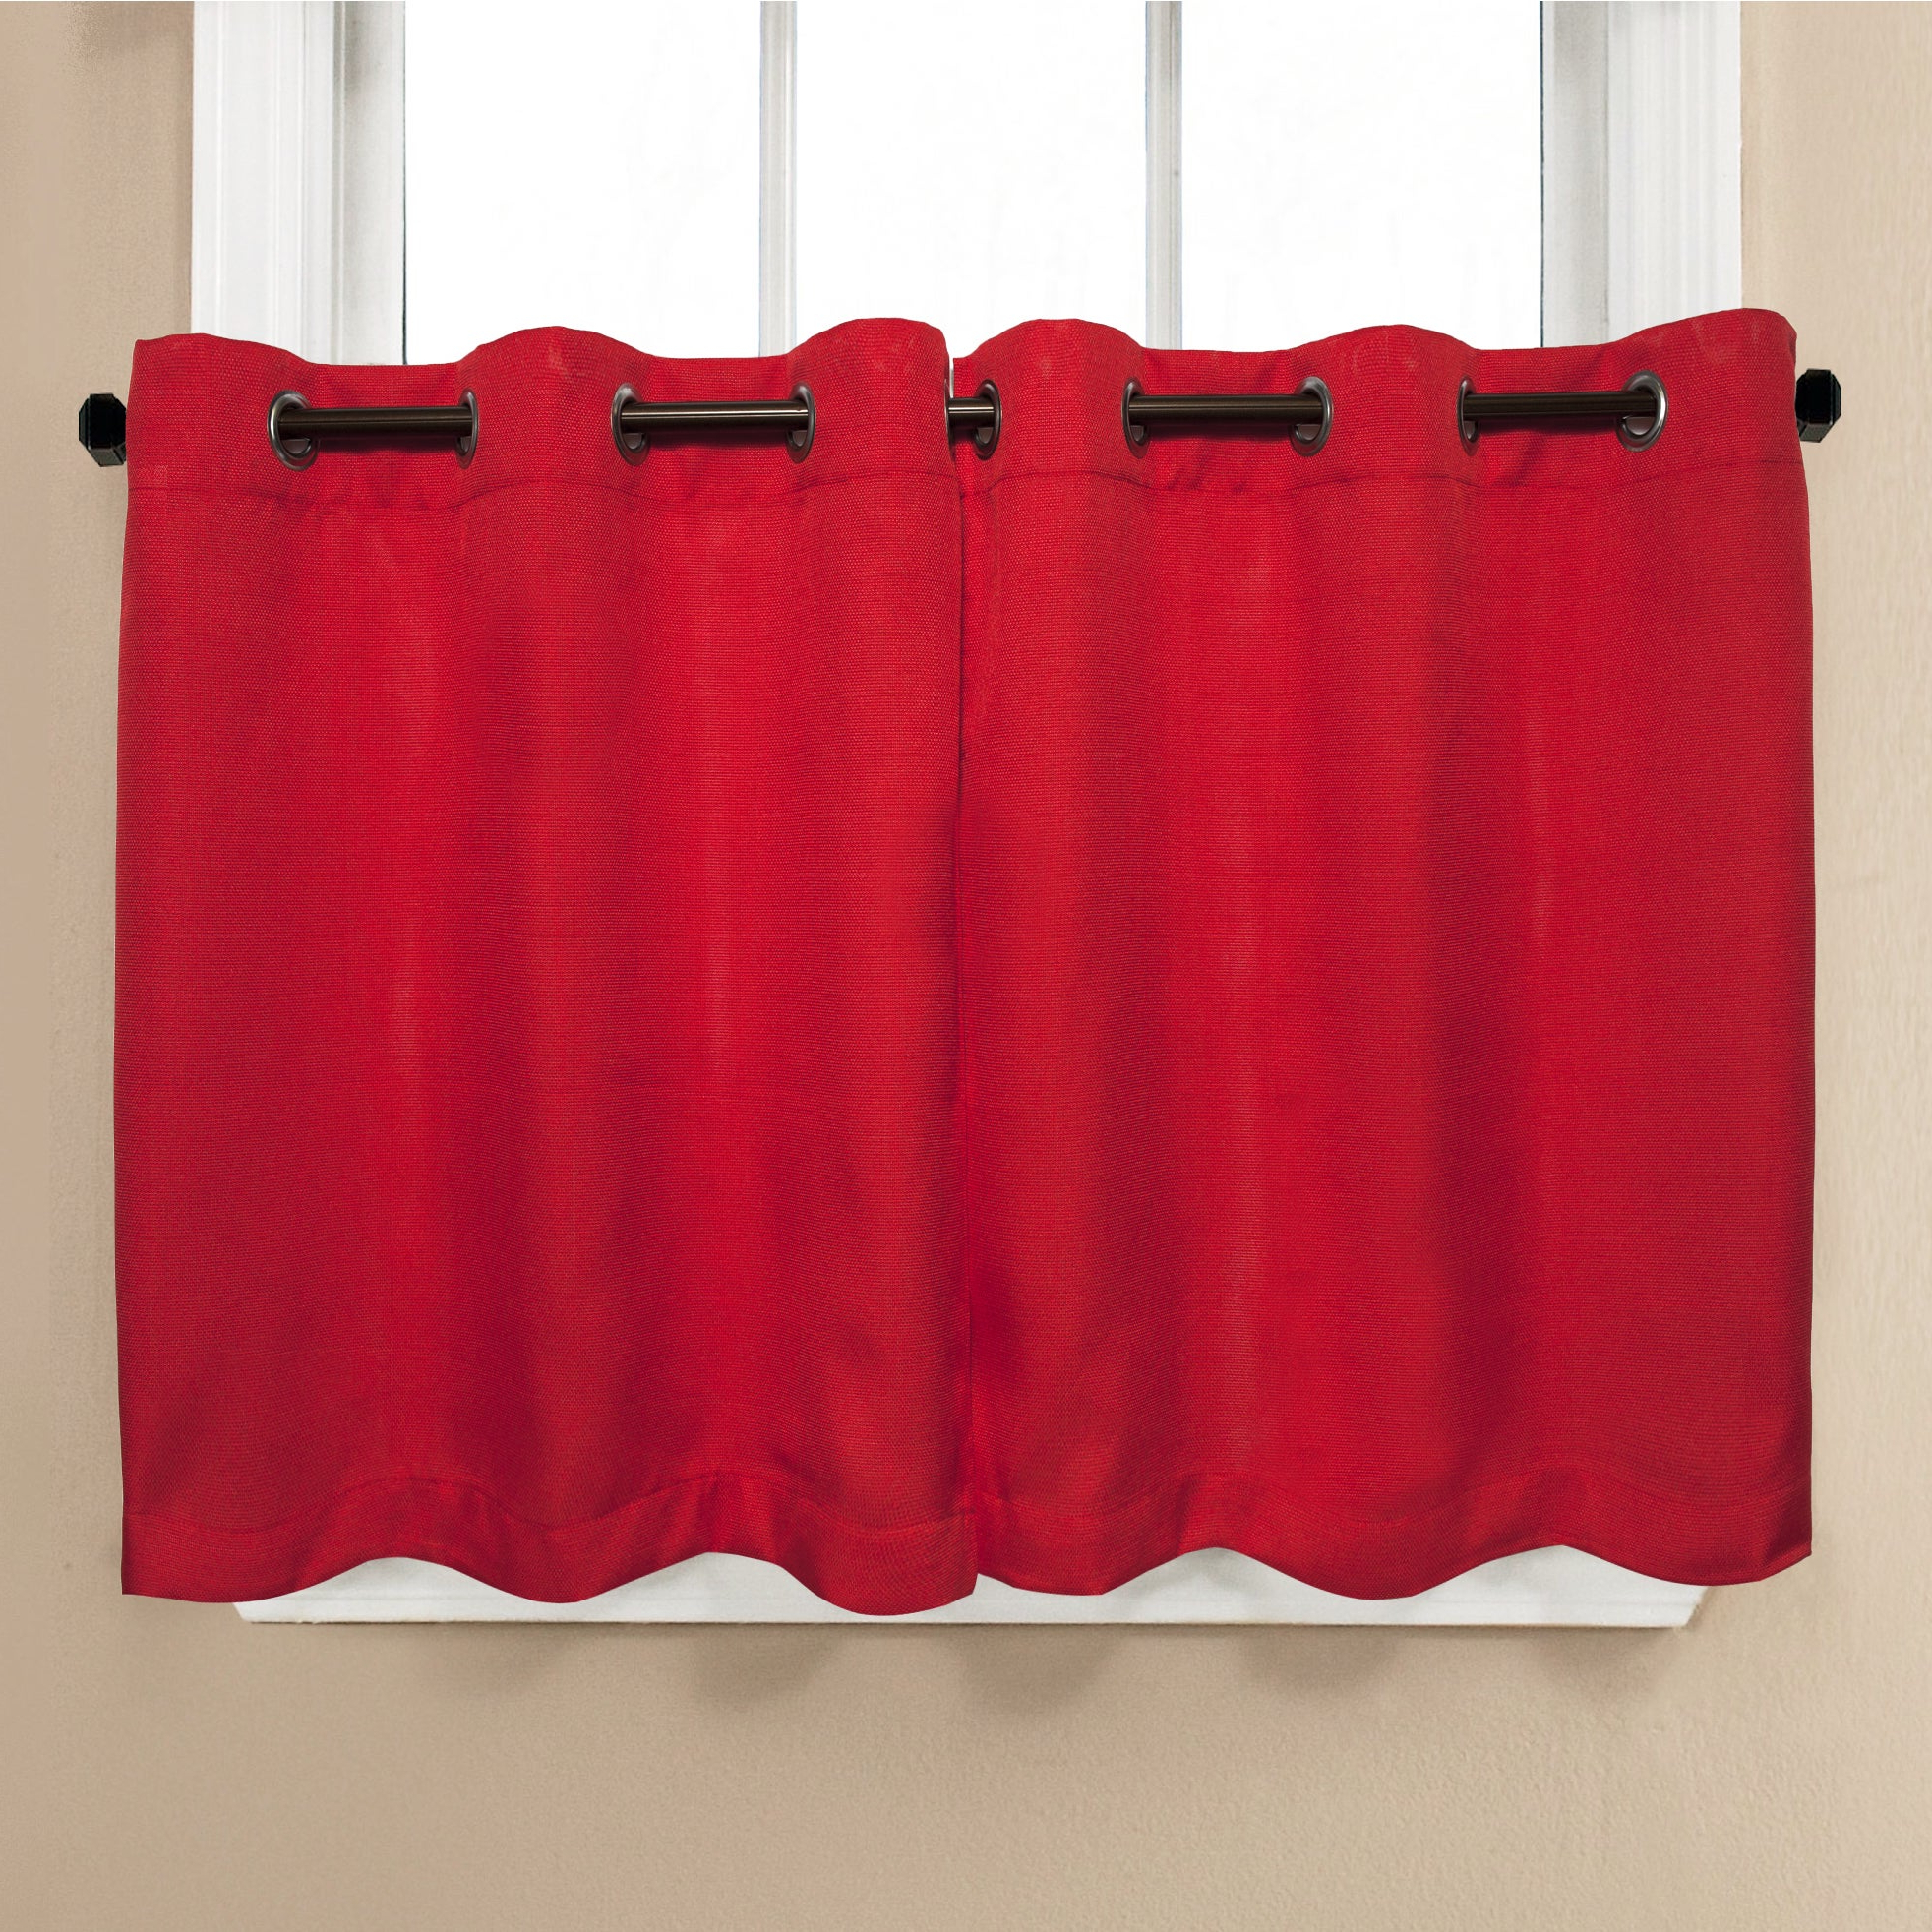 Current Modern Subtle Texture Solid White Kitchen Curtain Parts With Grommets Tier And Valance Options Pertaining To Modern Subtle Texture Solid Red Kitchen Curtain Parts With Grommets Tier And Valance Options (View 6 of 20)